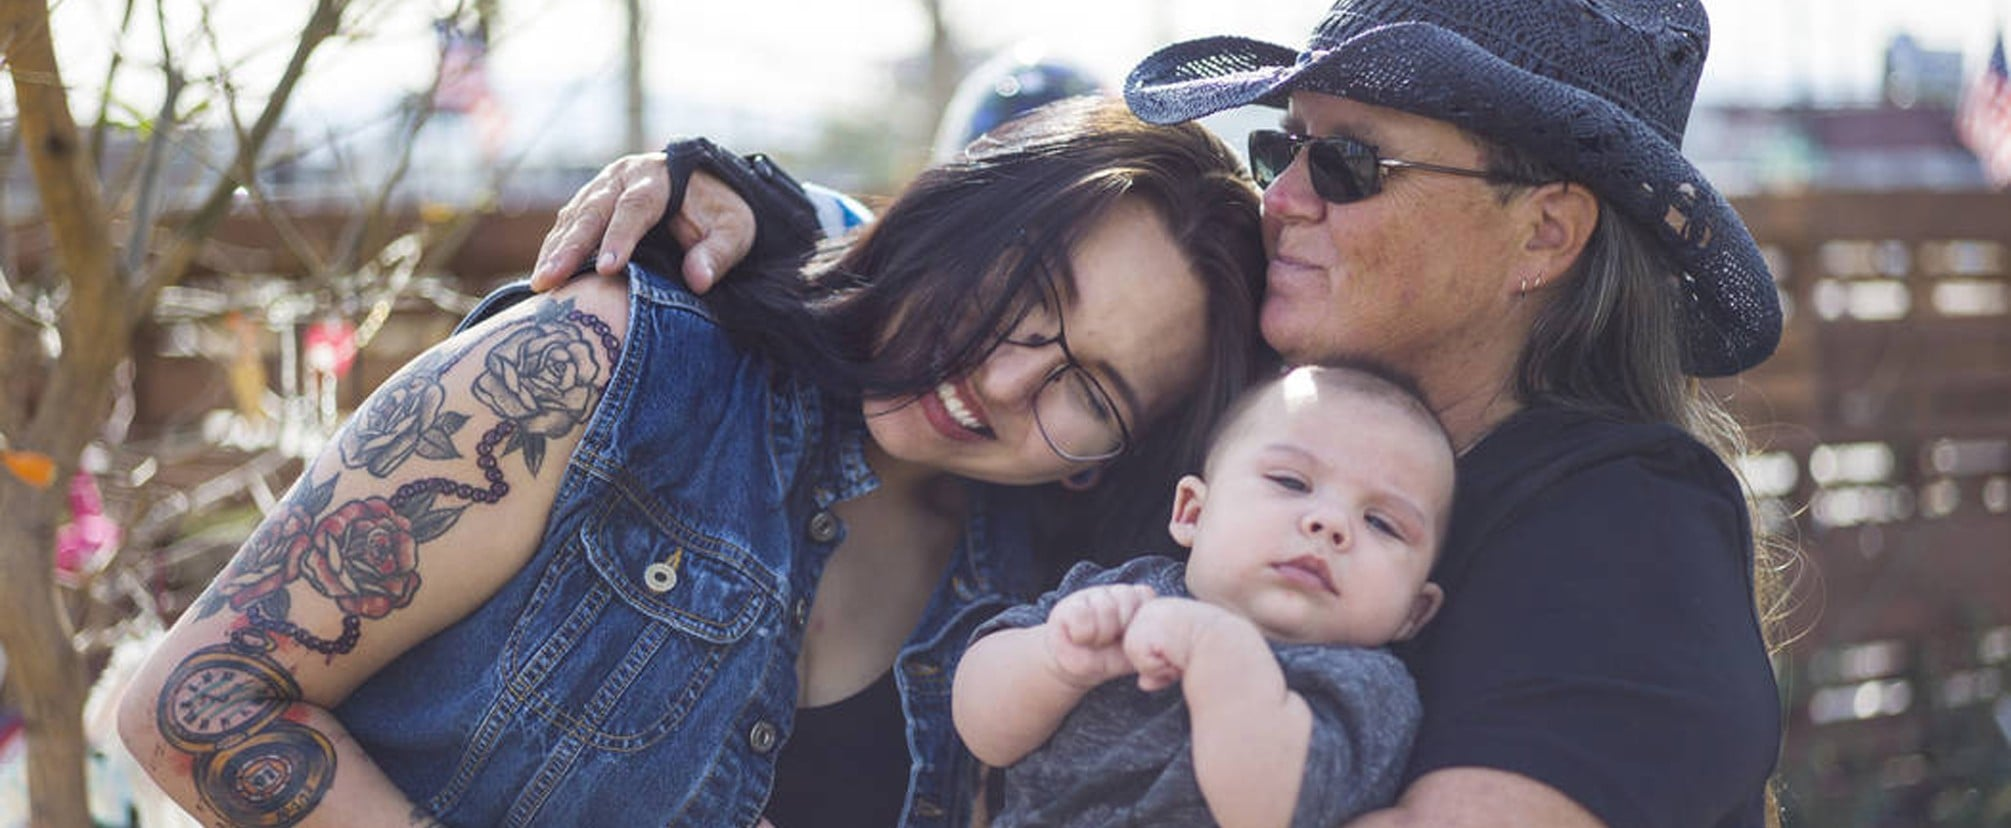 Woman Who Shielded Expectant Mom During Vegas Shooting Meets the Baby Boy She Saved